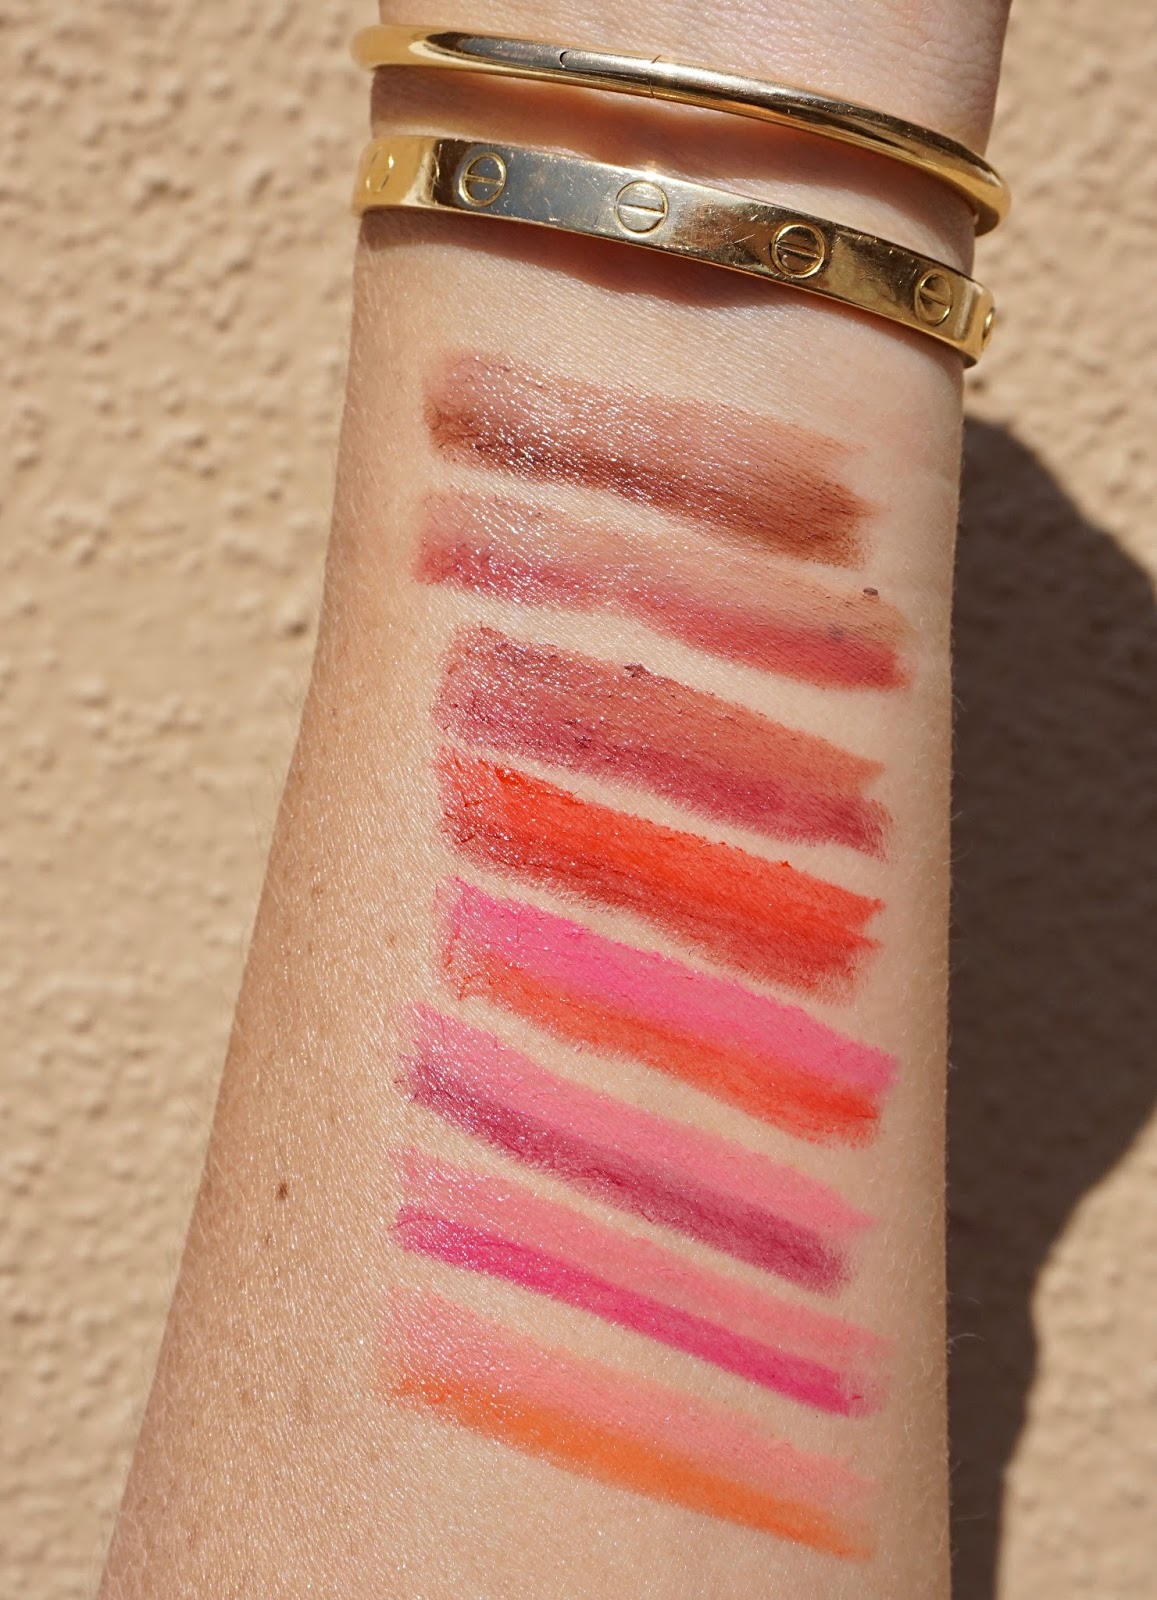 by terry twist on lipstick swatches